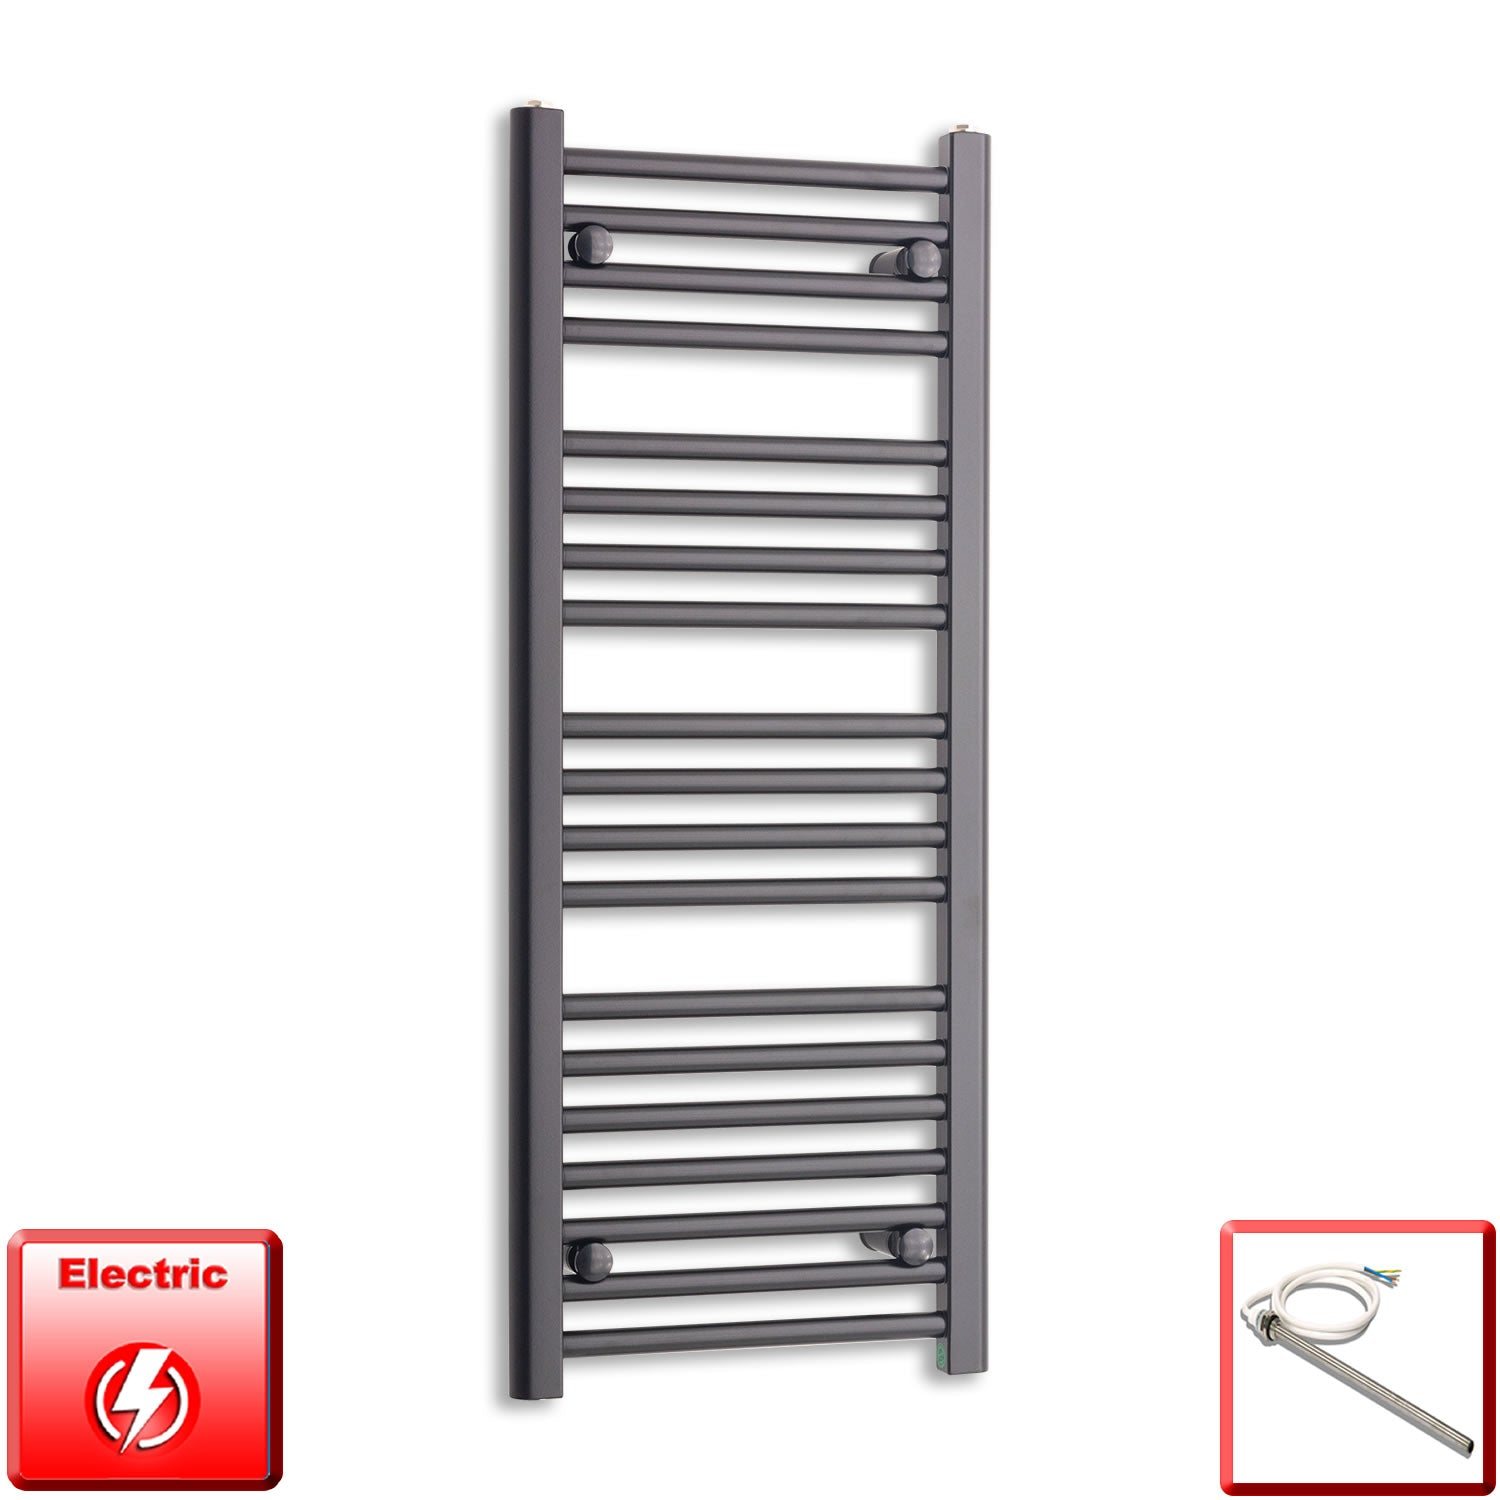 400mm Wide 1000mm High Pre-Filled Black Electric Towel Rail Radiator With Single Heat Element